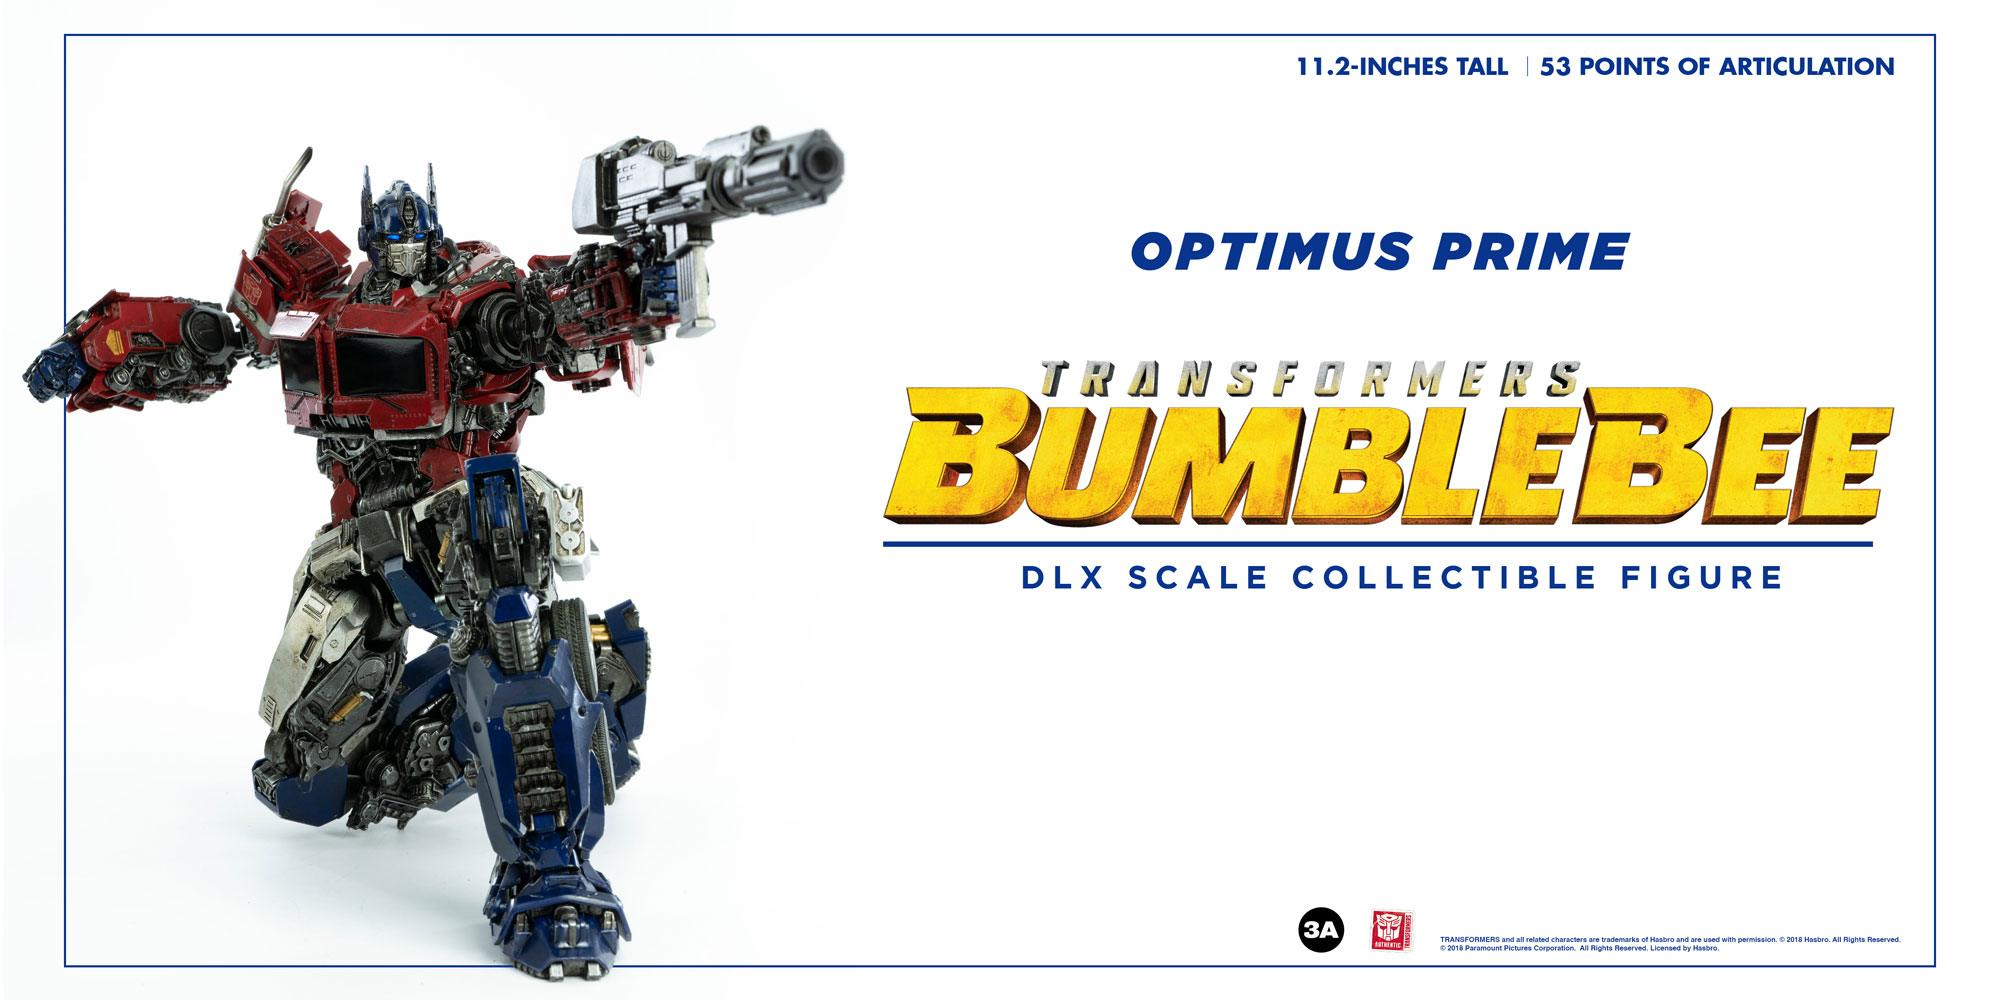 TRANSFORMERS - Bumblebee figurine DLX Scale Optimus Prime 28cm